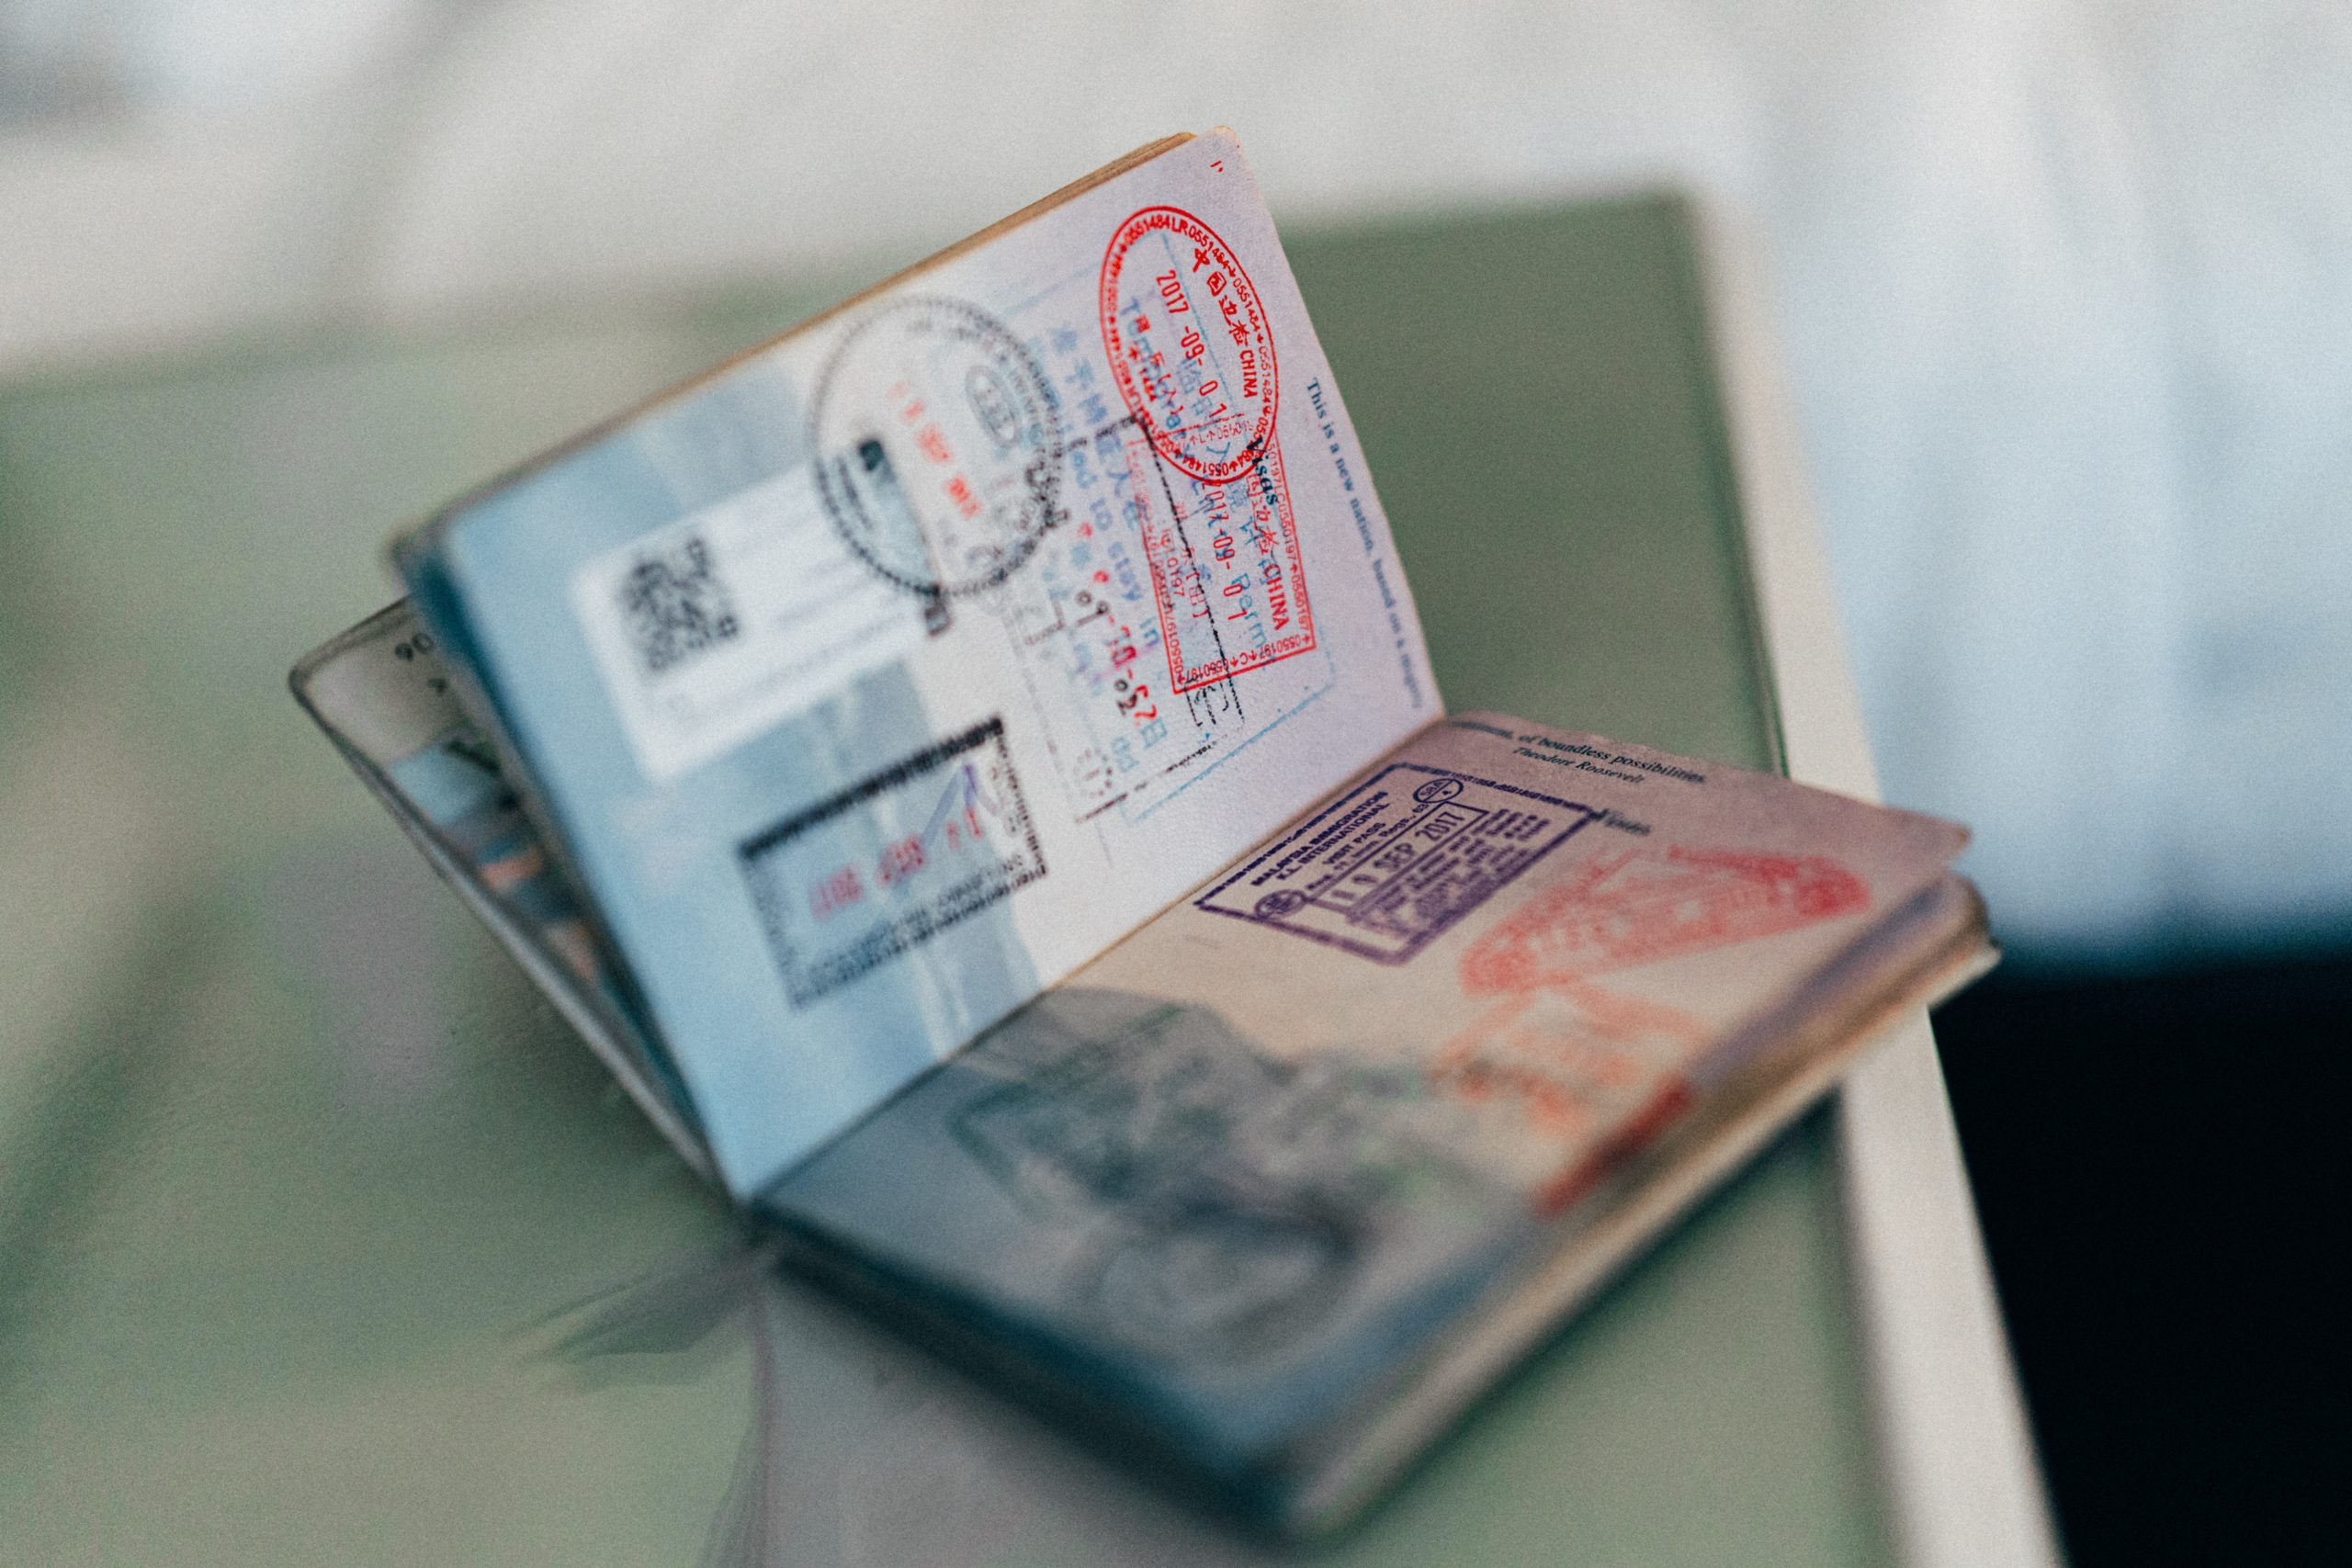 An image of an open passport book, which you need as a requirement for traveling to South Korea..